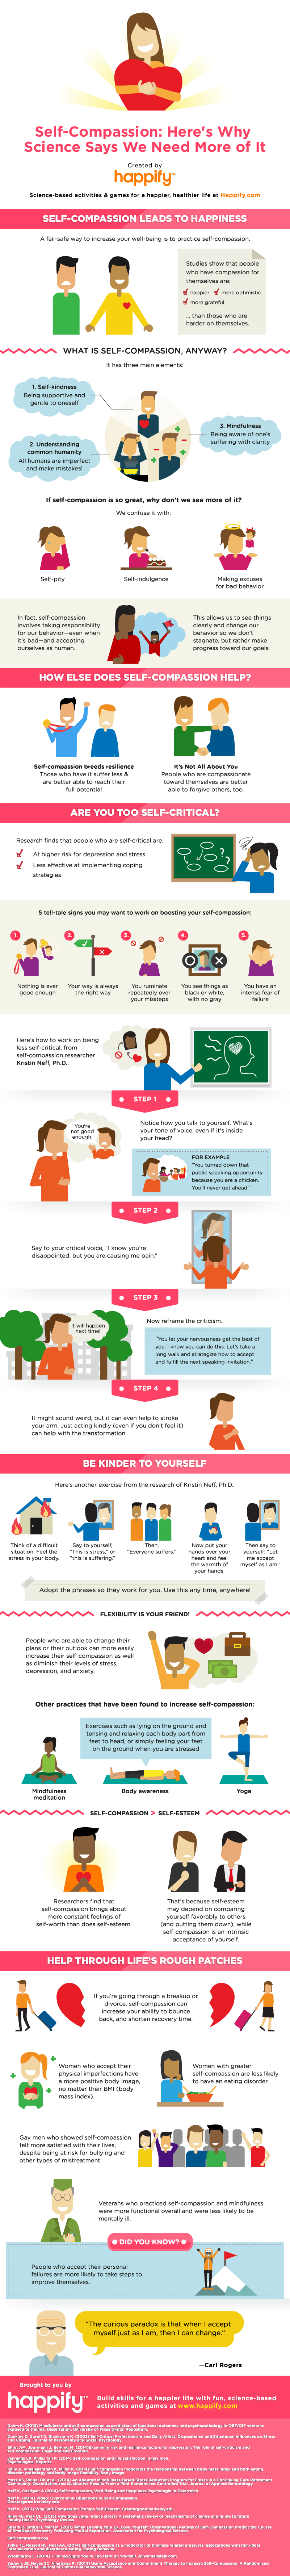 Self-Compassion: Why Science Says We Need More of It (A great infographic from Happify.)